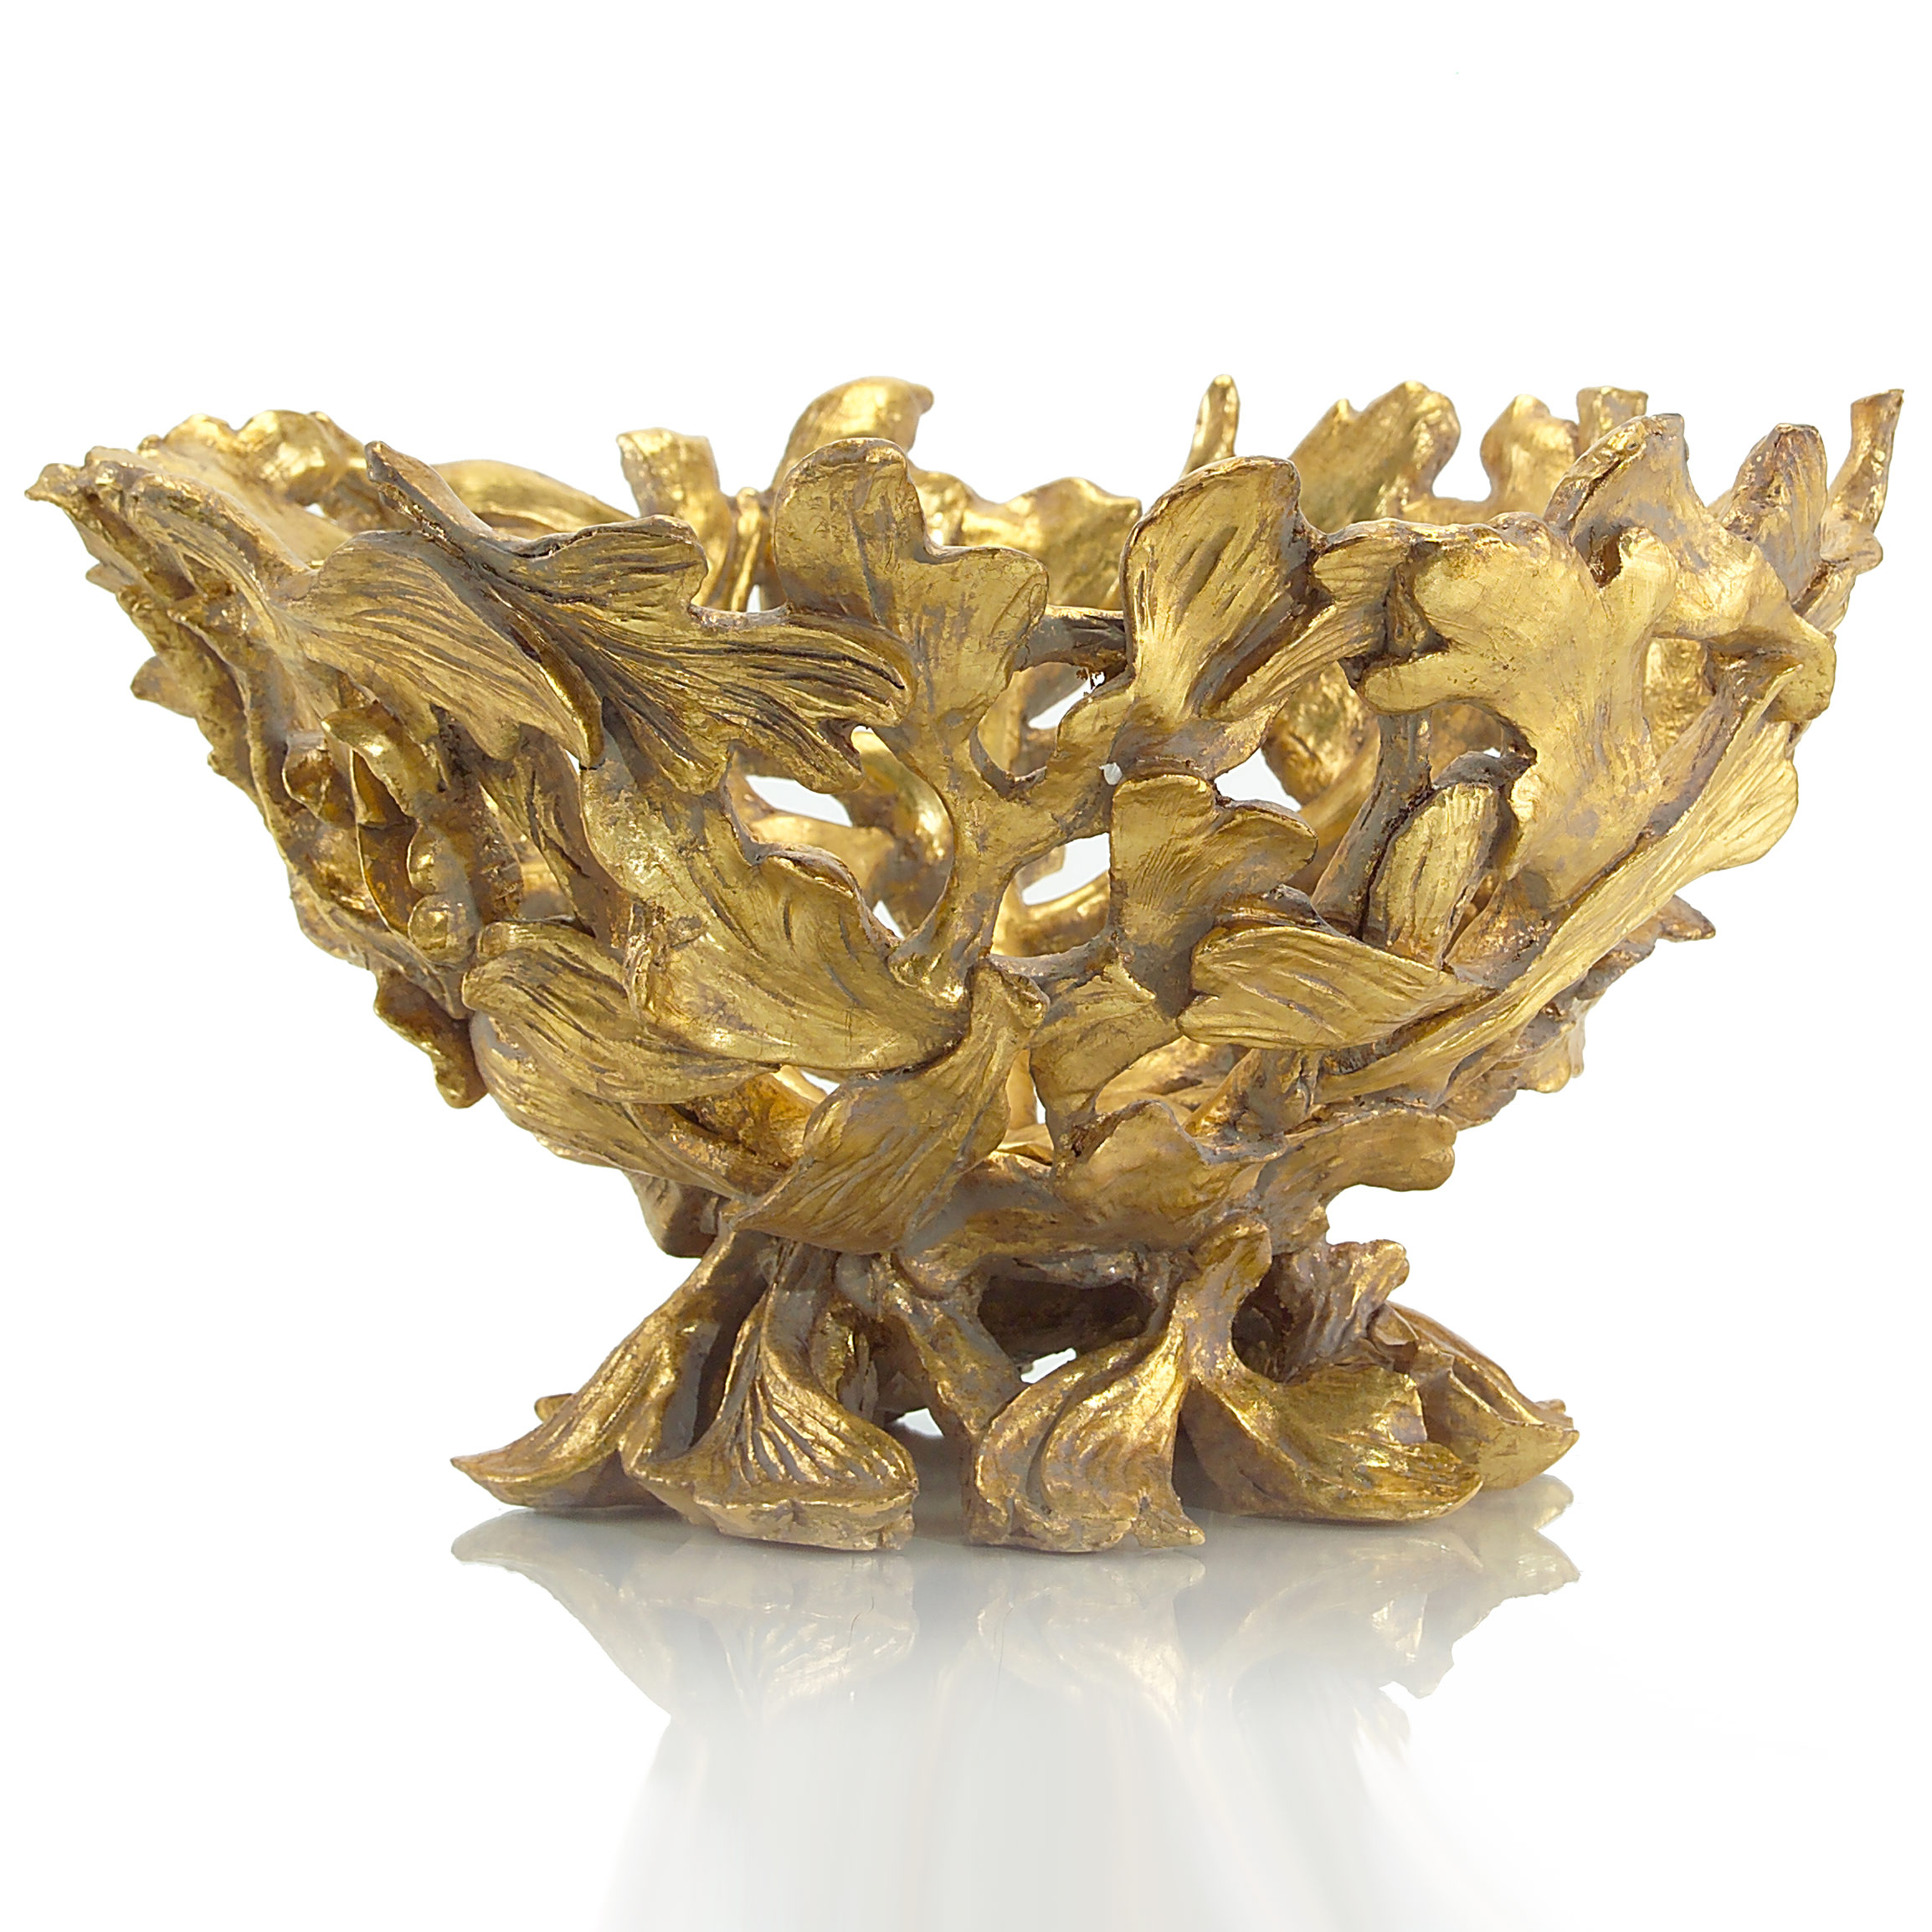 Novalie Modern Classic Antique Gold Twisted Branch Bowl